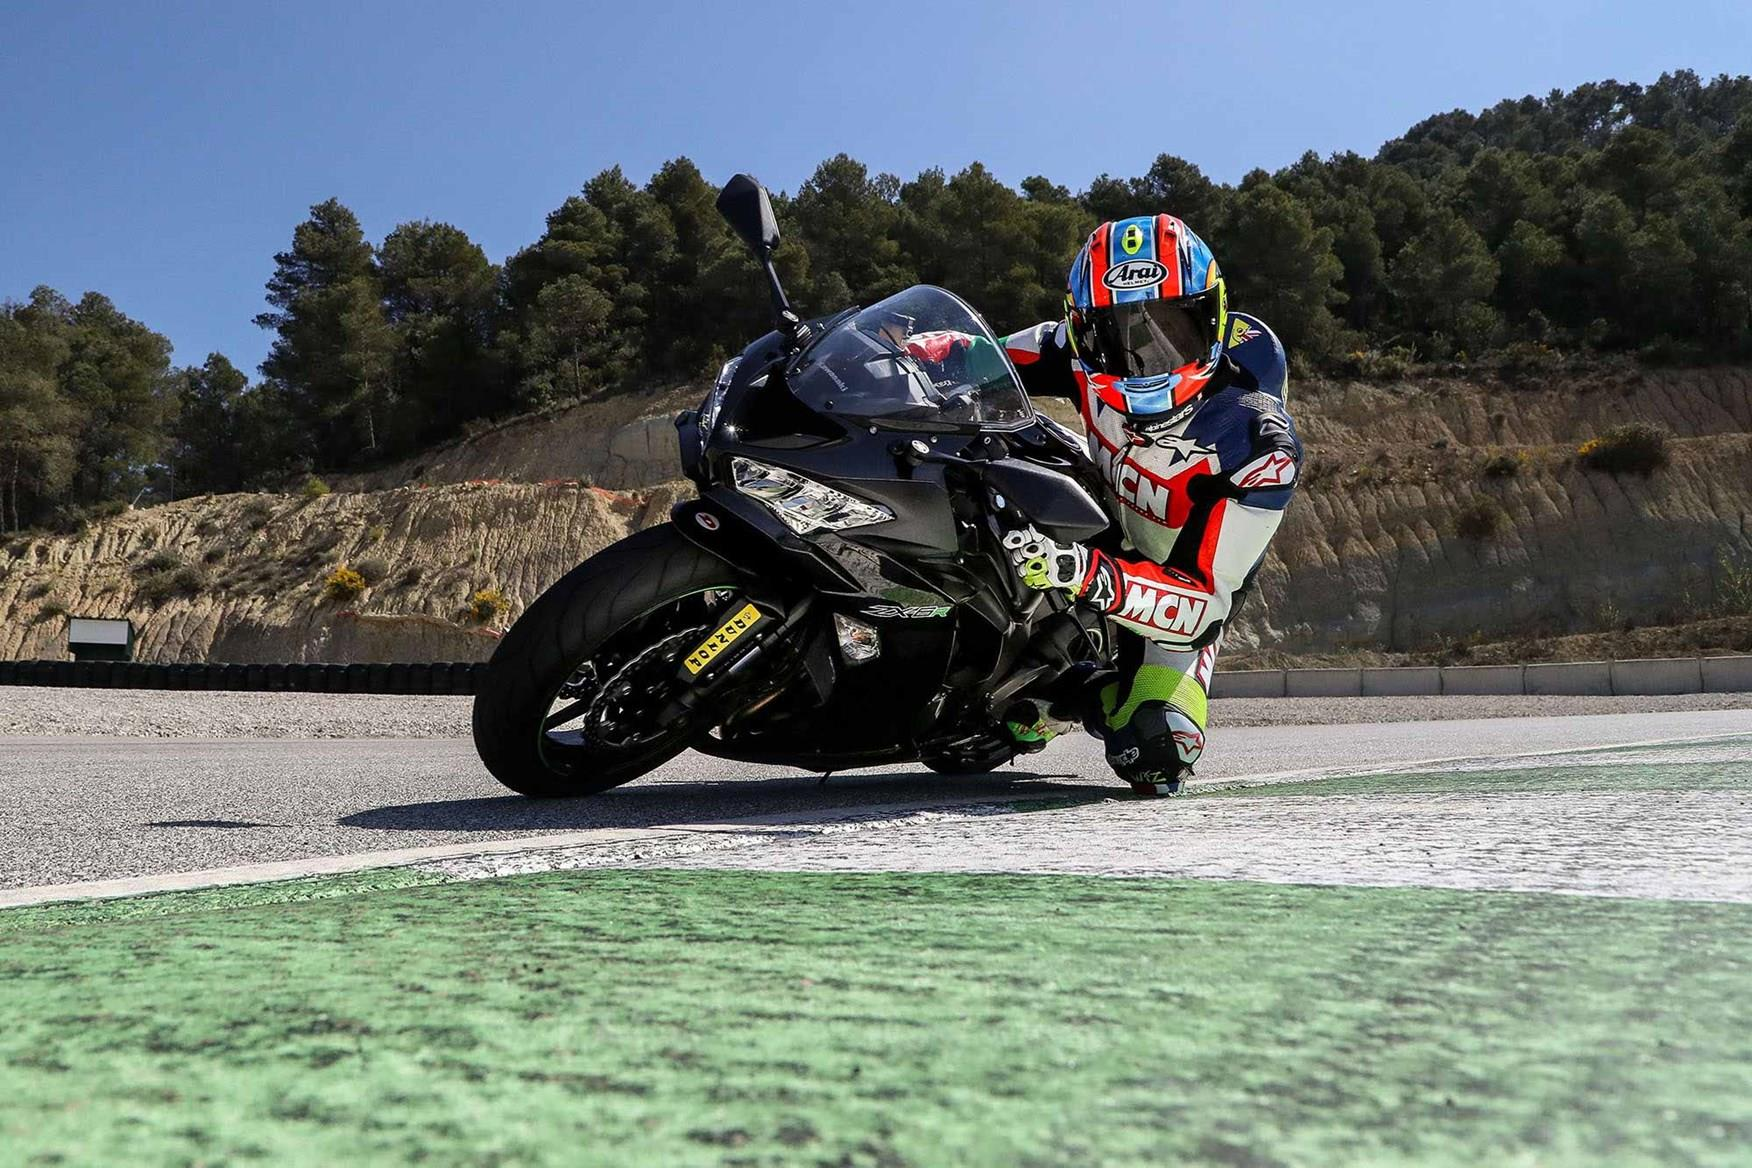 Riding the Kawasaki ZX-6R on track